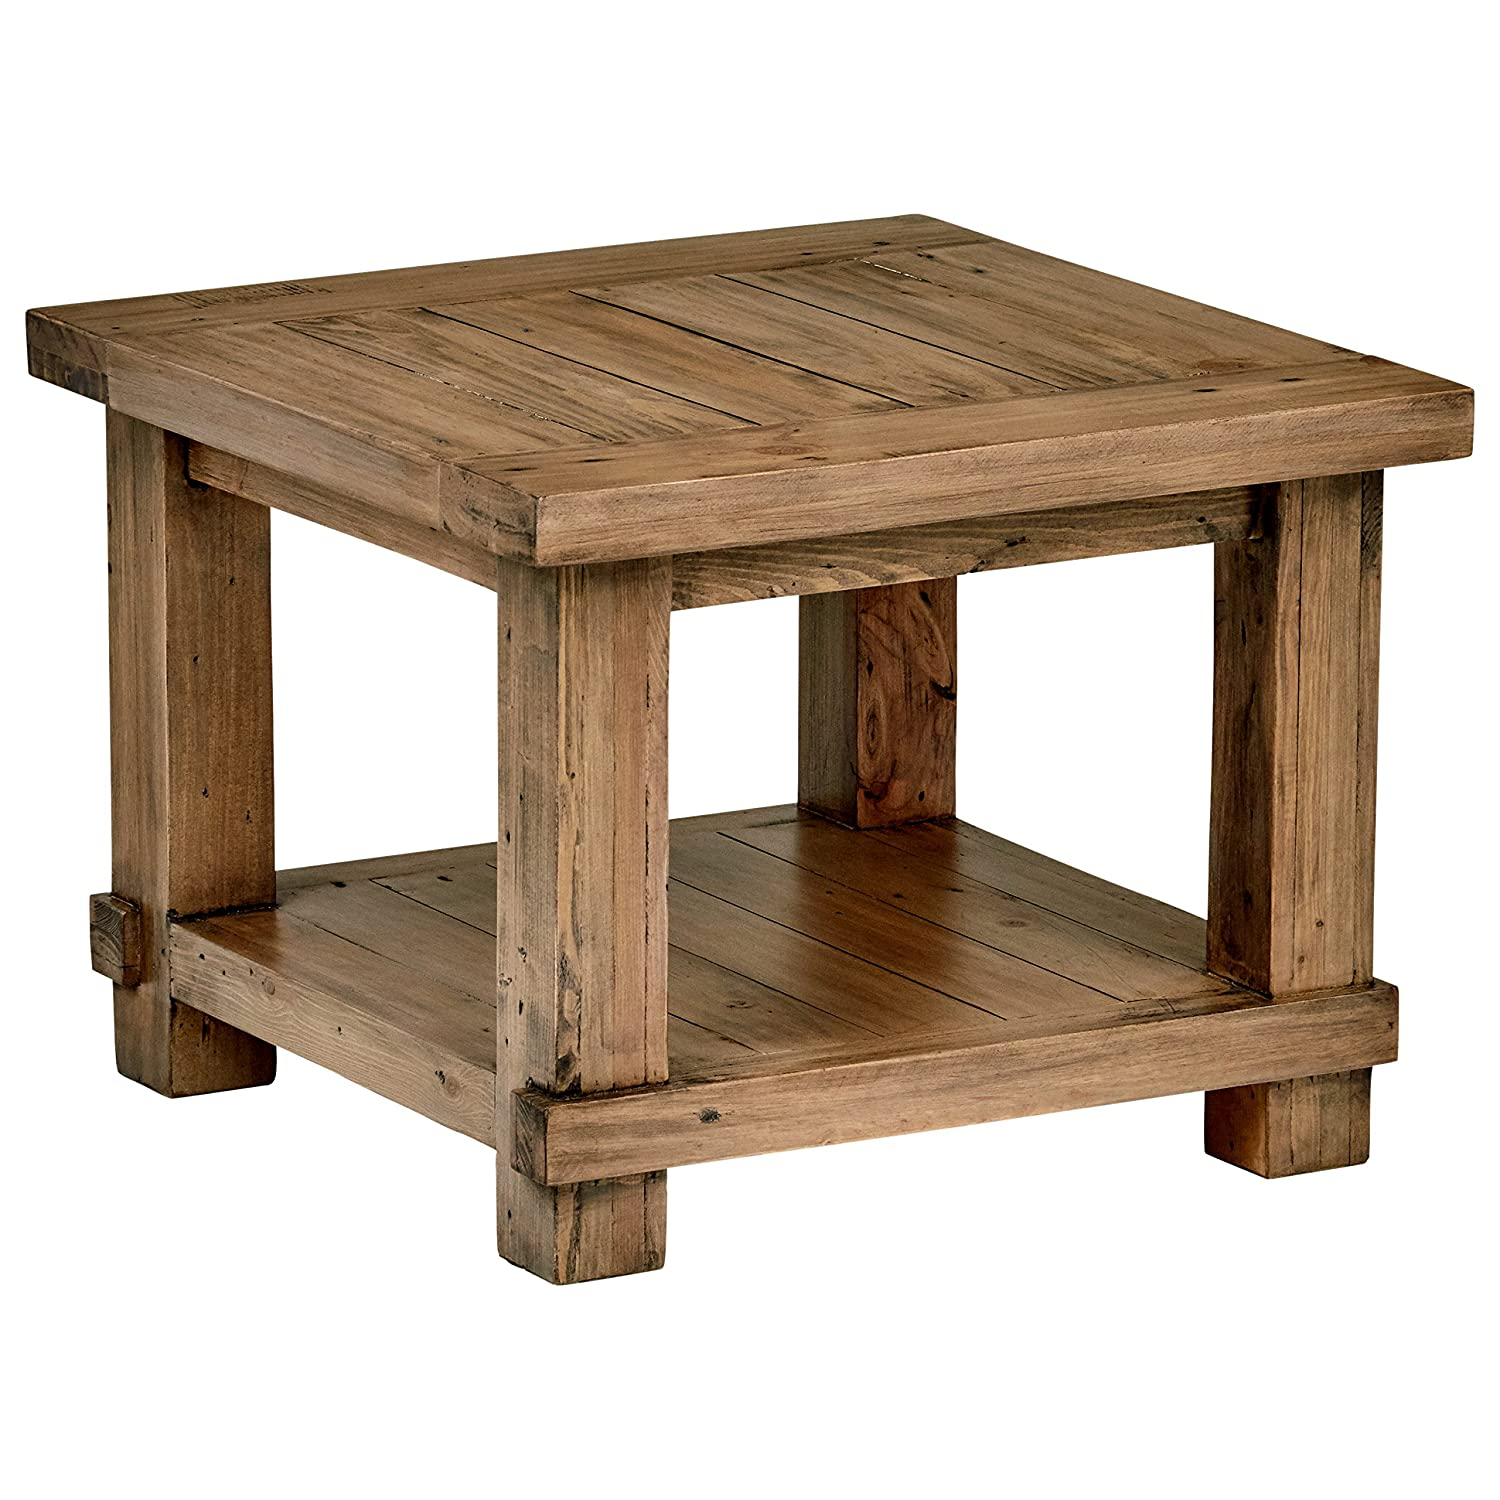 "Stone & Beam Ferndale Rustic Reclaimed Pine Side End Table, 24""W, Sandstone"